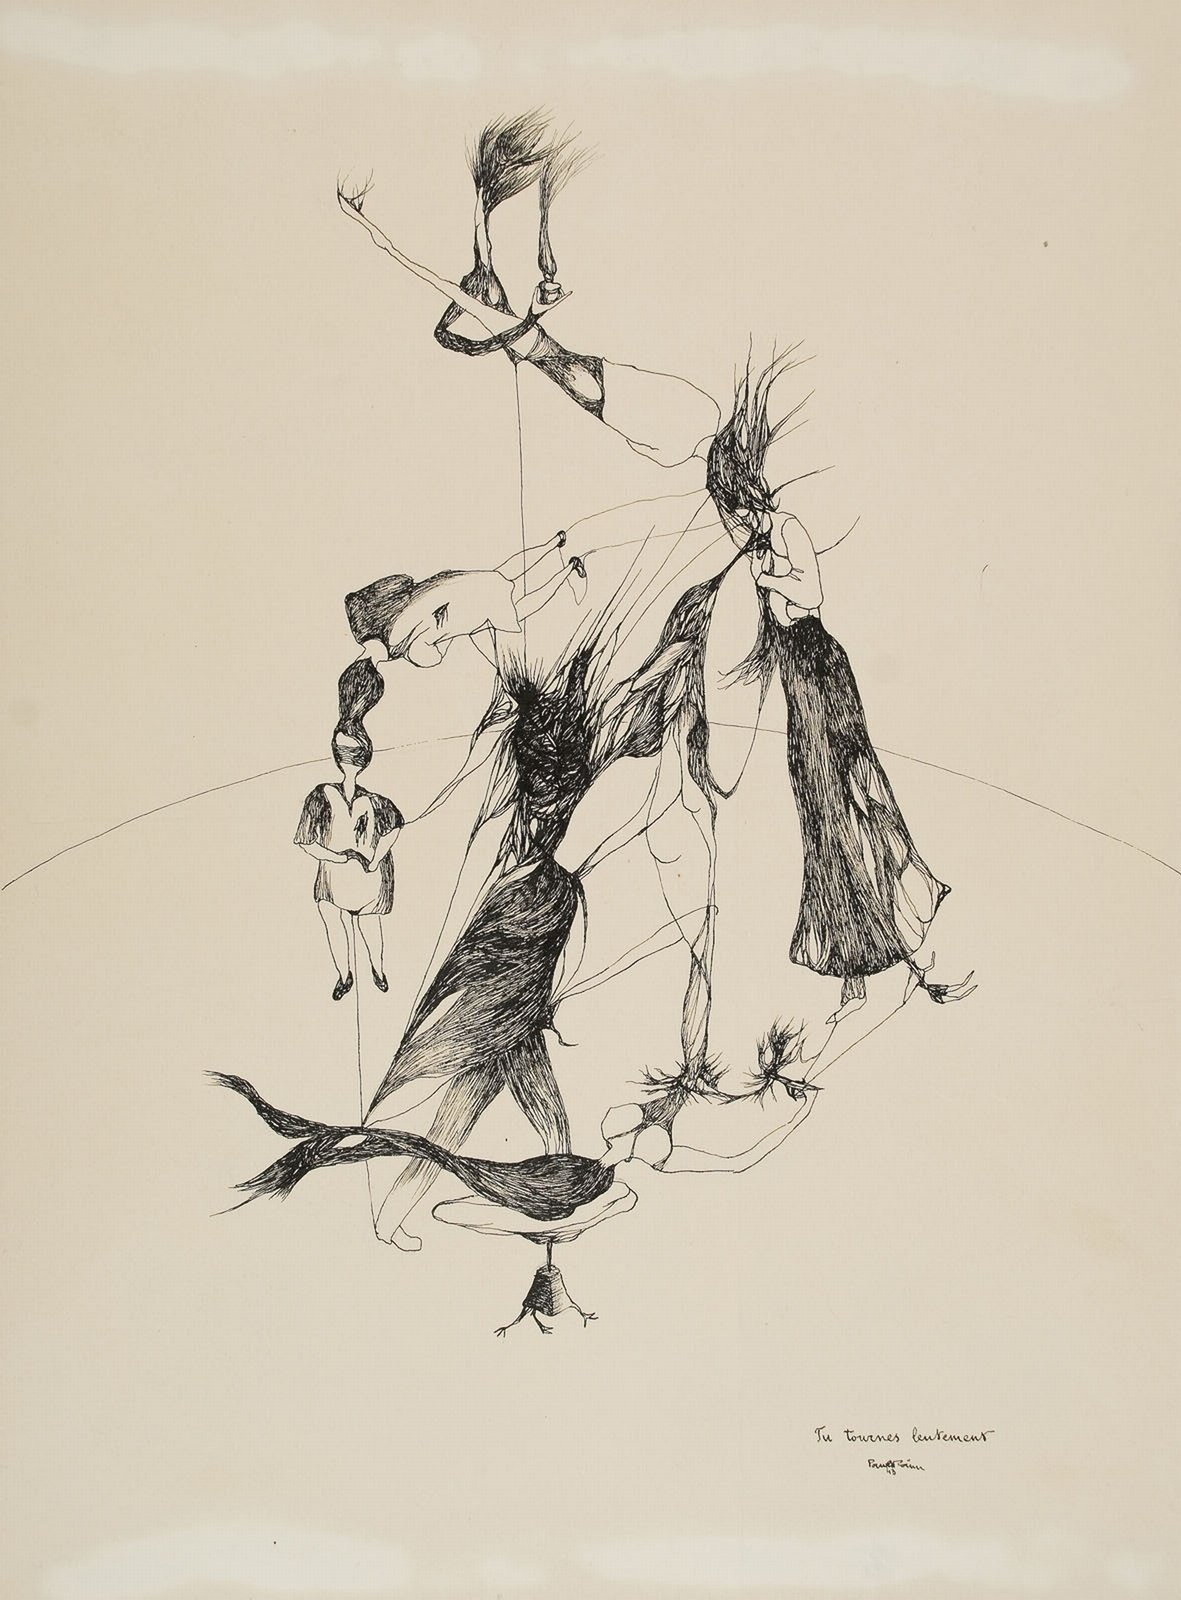 Tu tournes lentement, signed and dated: Paul Păun 4  (China ink on paper ), Paul Păun , Private collection, reproduced by permission, In Copyright